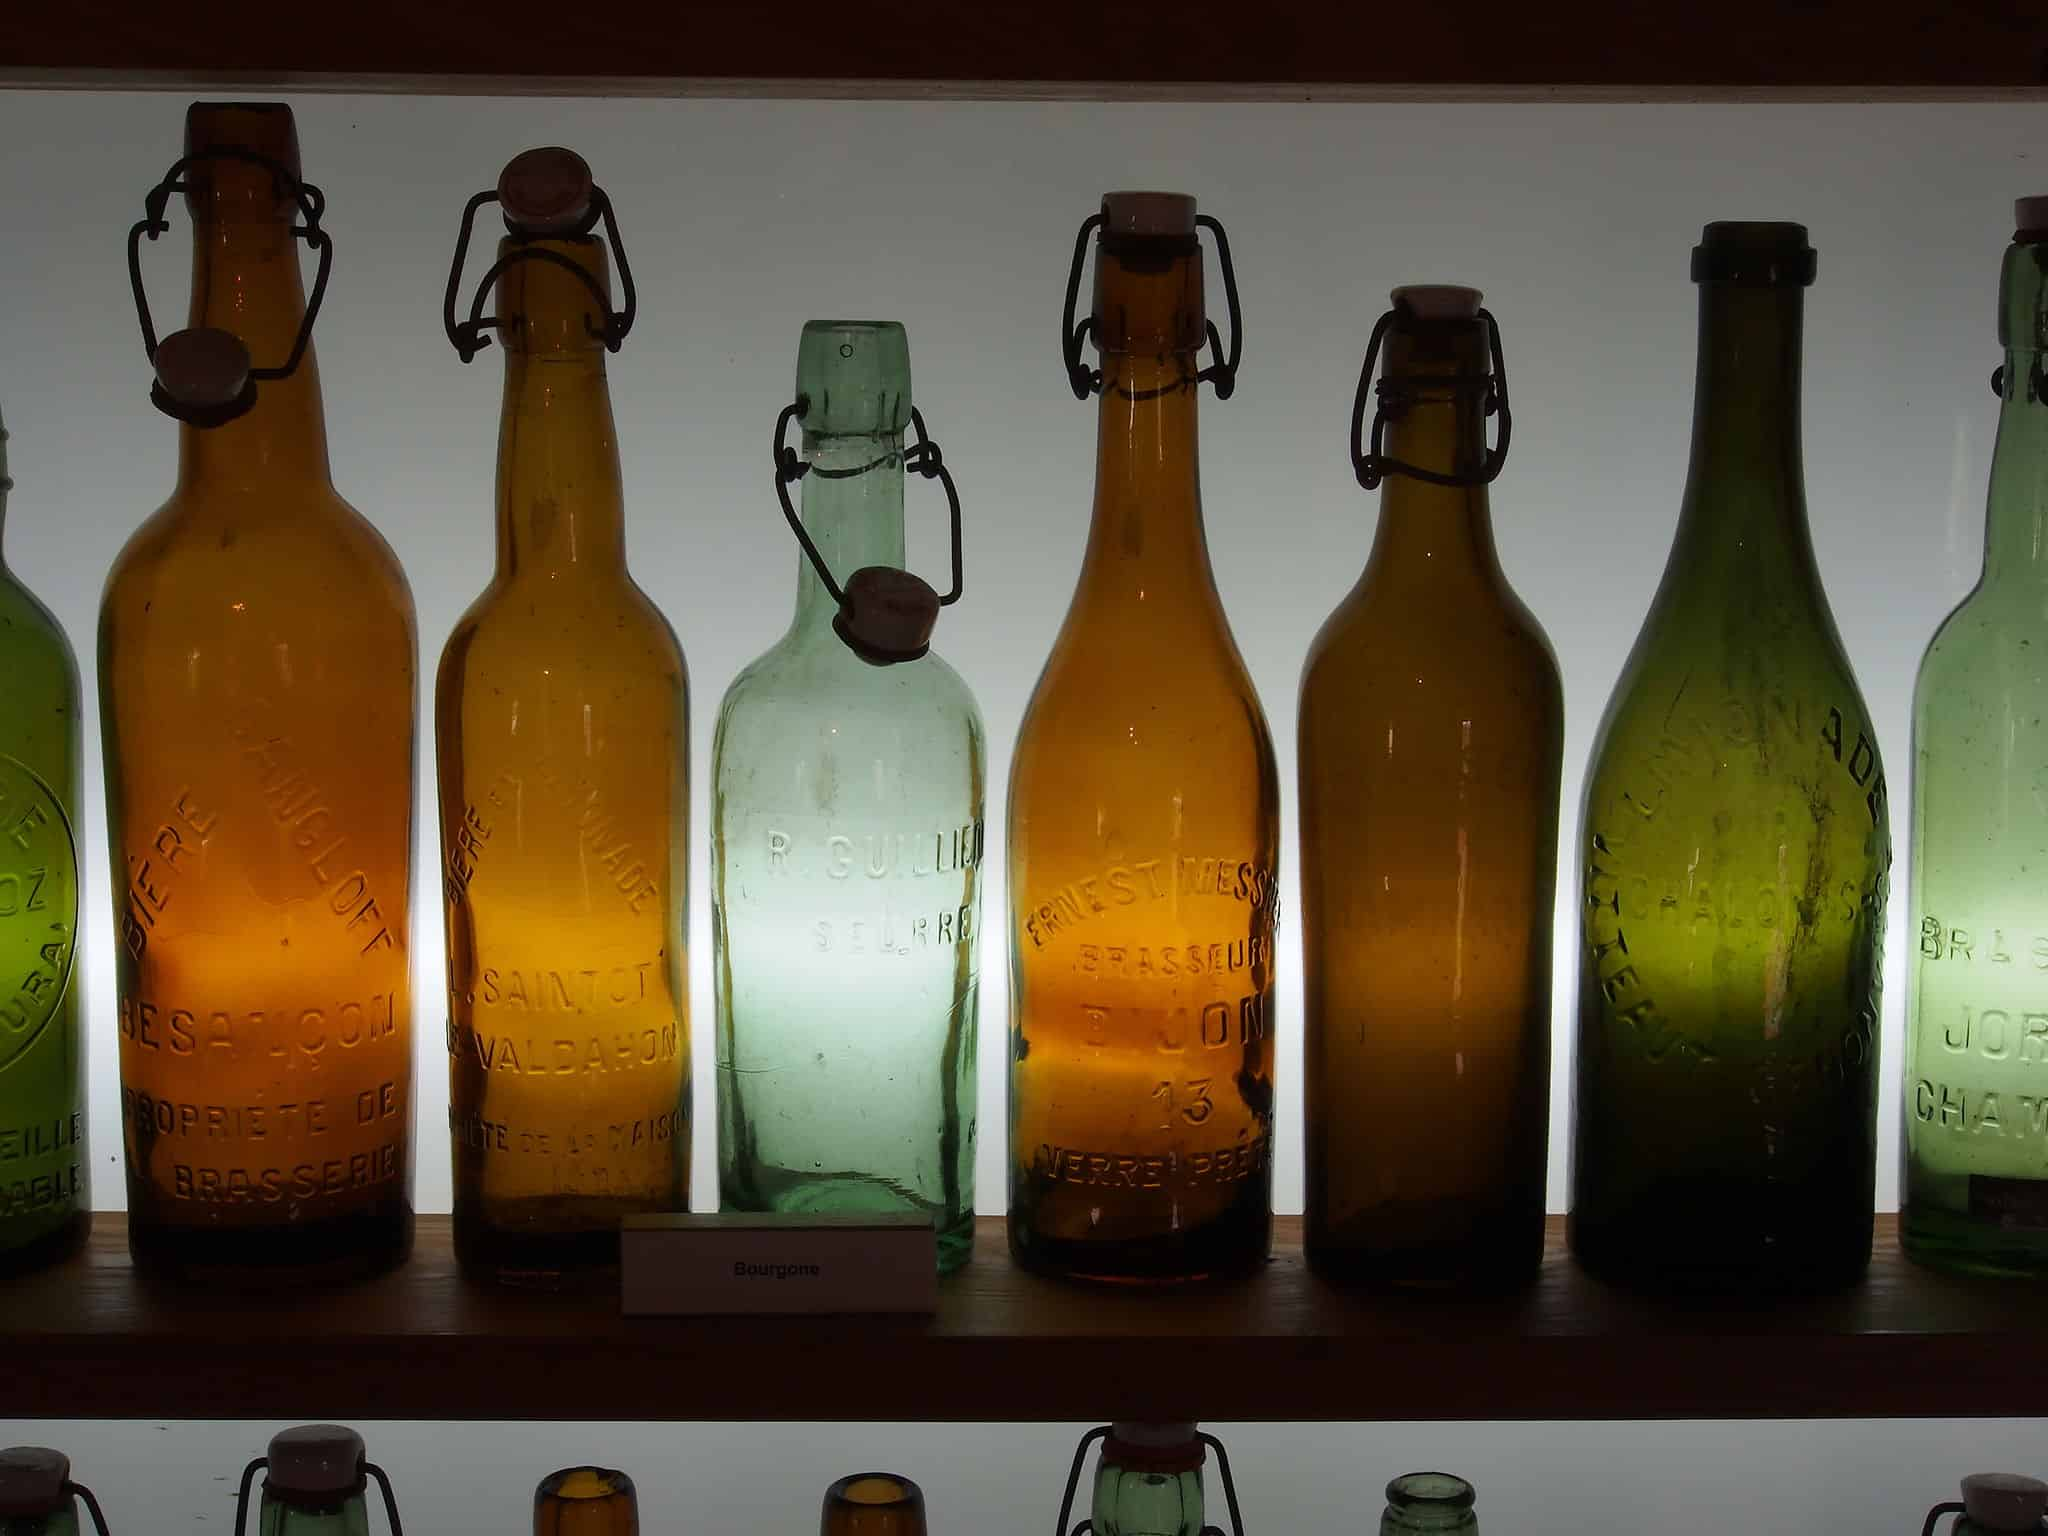 How to Clean Old Bottles: 9 Tips and Tricks to Make Them Shine